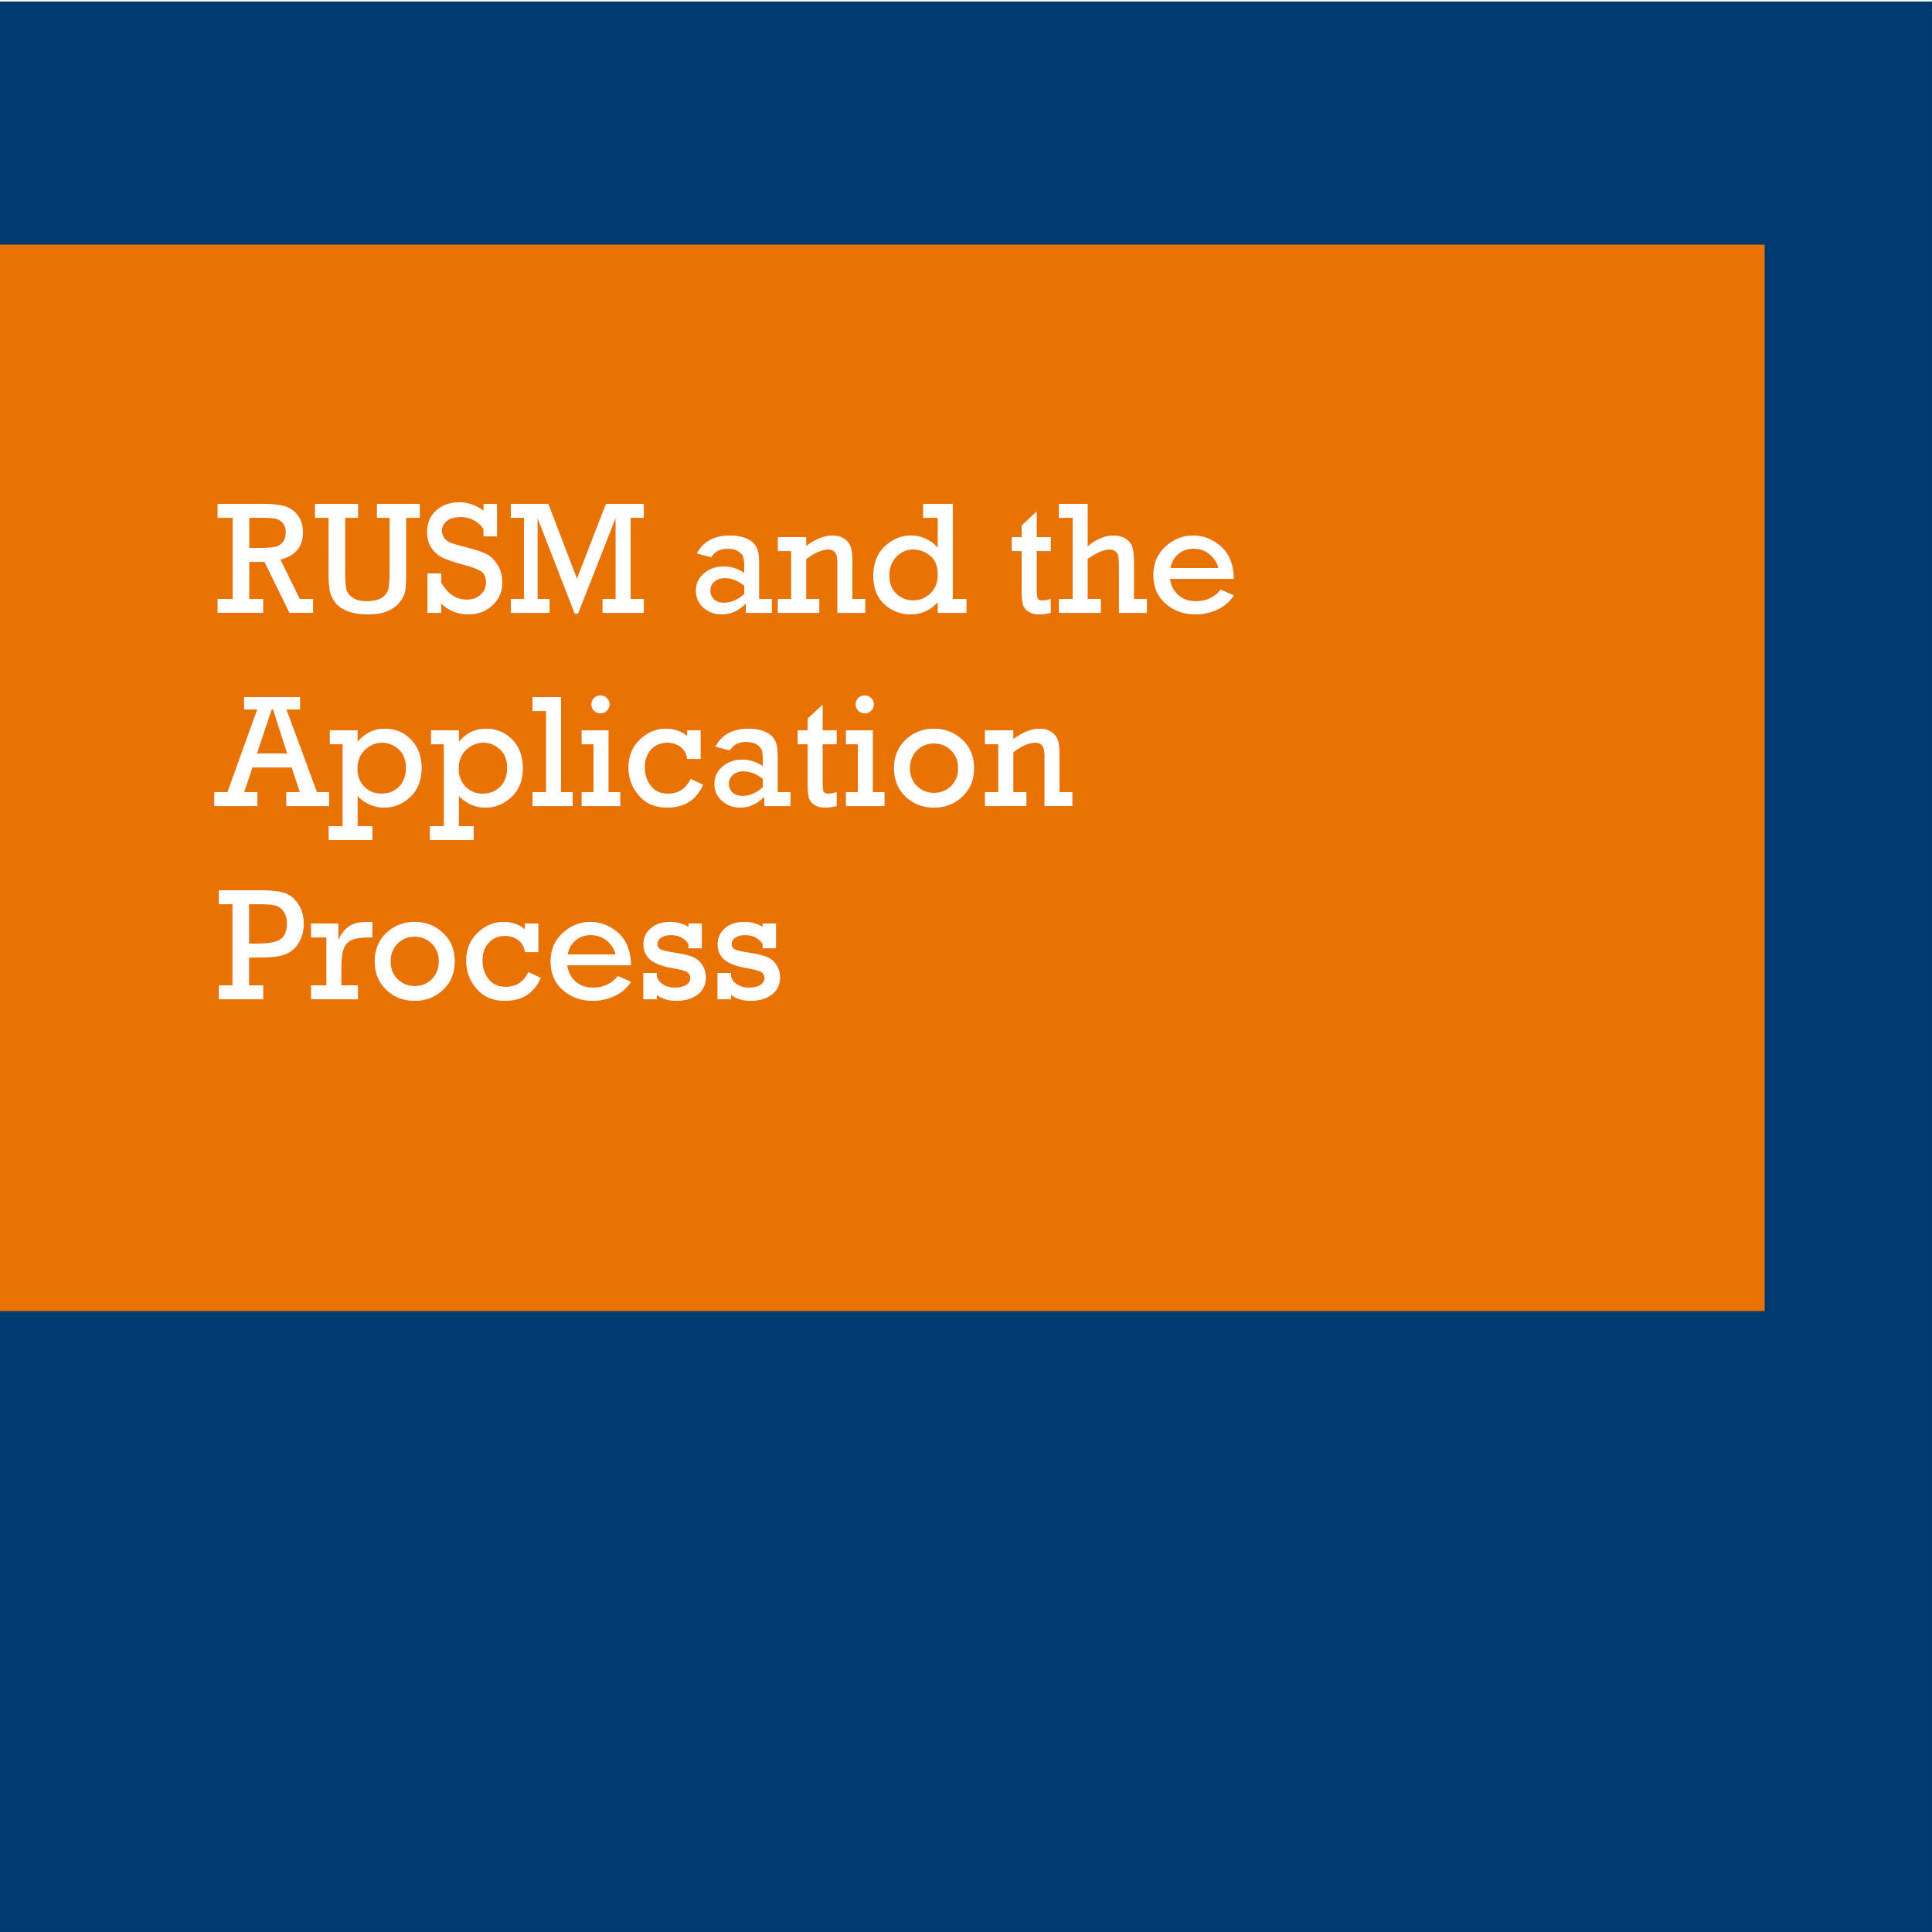 RUSM and the Application Process thumbnail